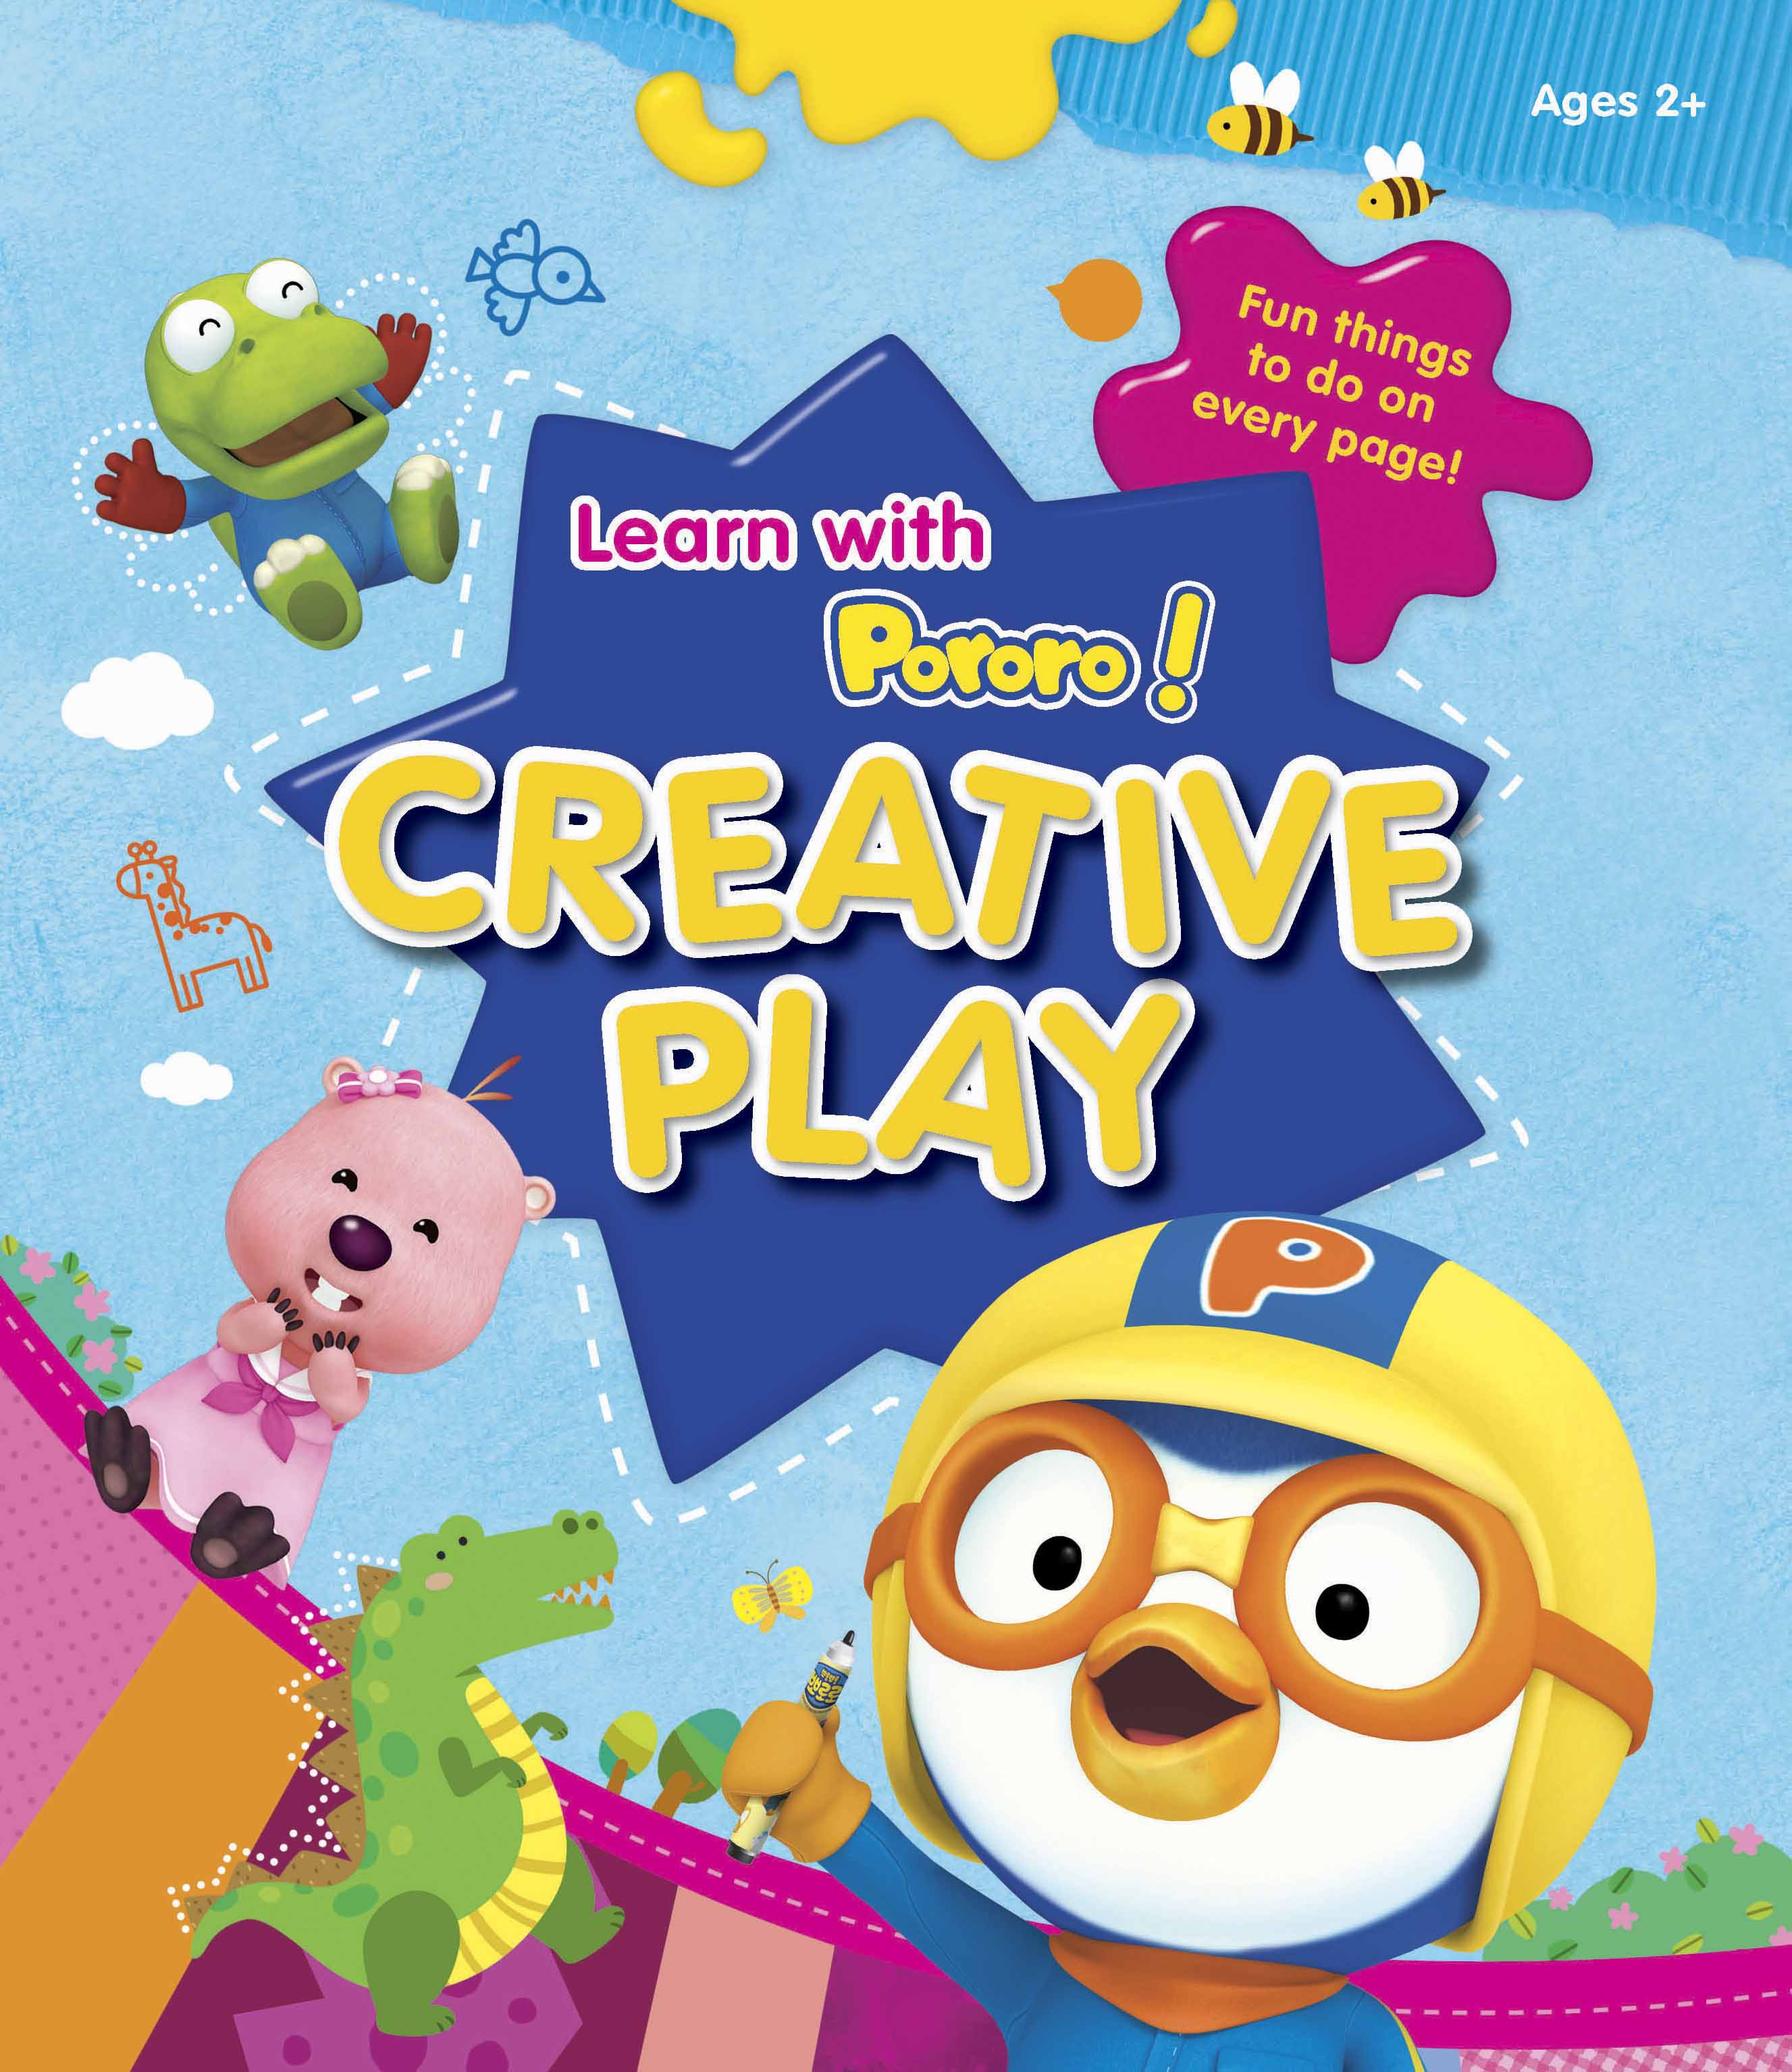 Learn with Pororo! Creative Play